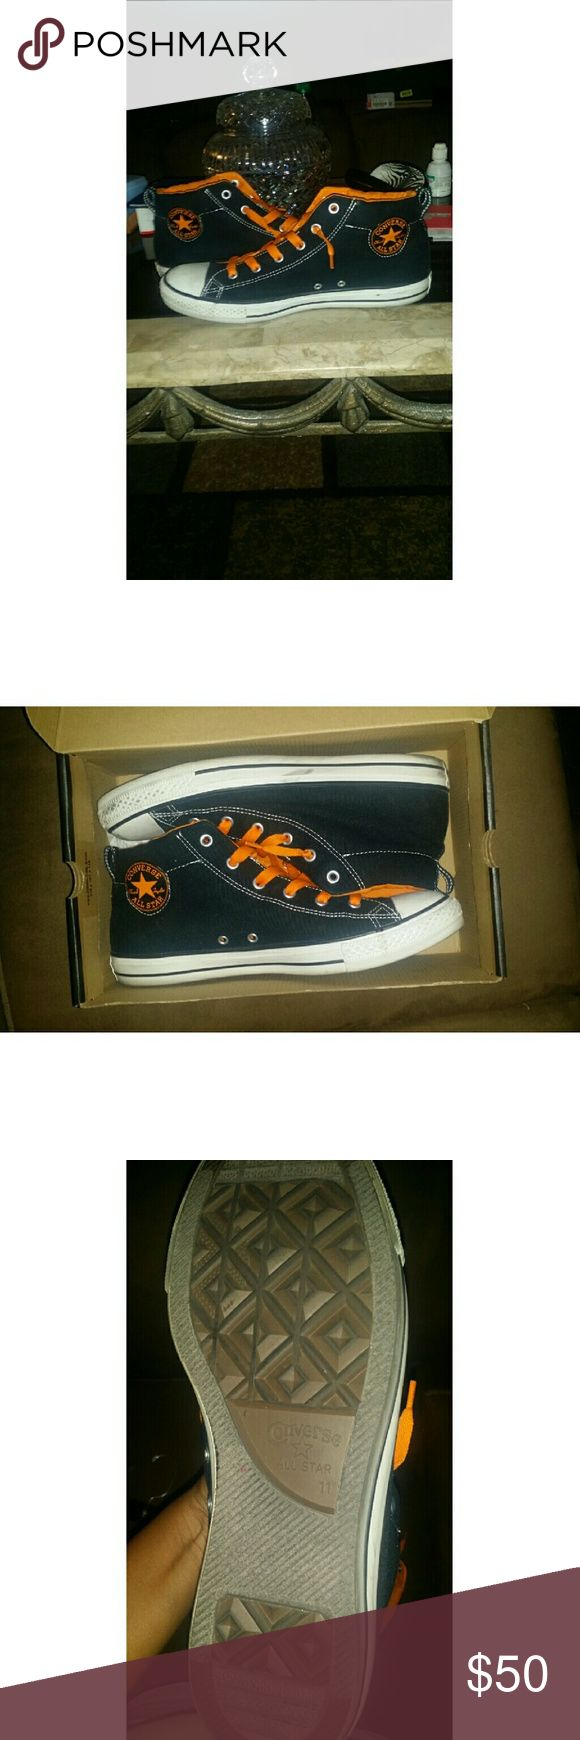 Converse Navy & orange high tops Men's High top Converse in navy and orange  Excellent condition and quality  No low balling  Price firm Converse Shoes Sneakers